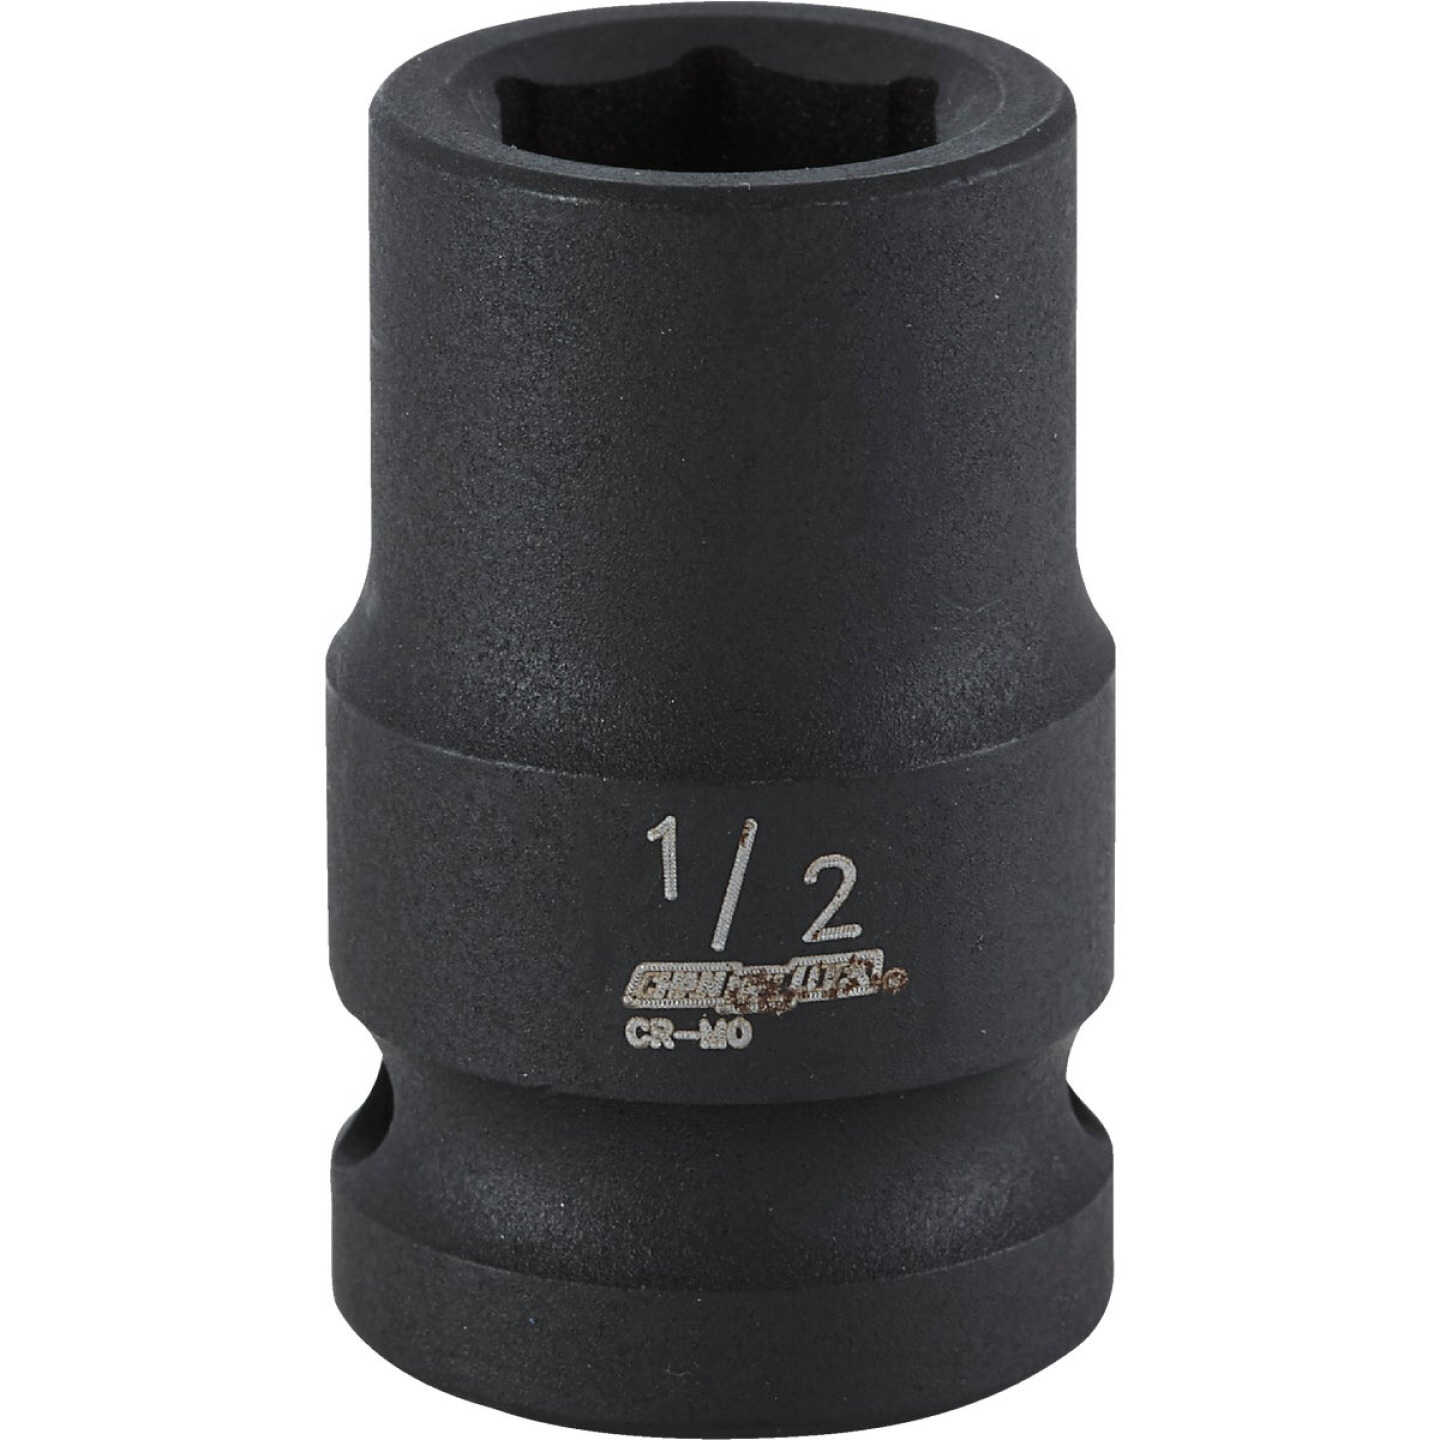 Channellock 1/2 In. Drive 1/2 In. 6-Point Shallow Standard Impact Socket Image 1